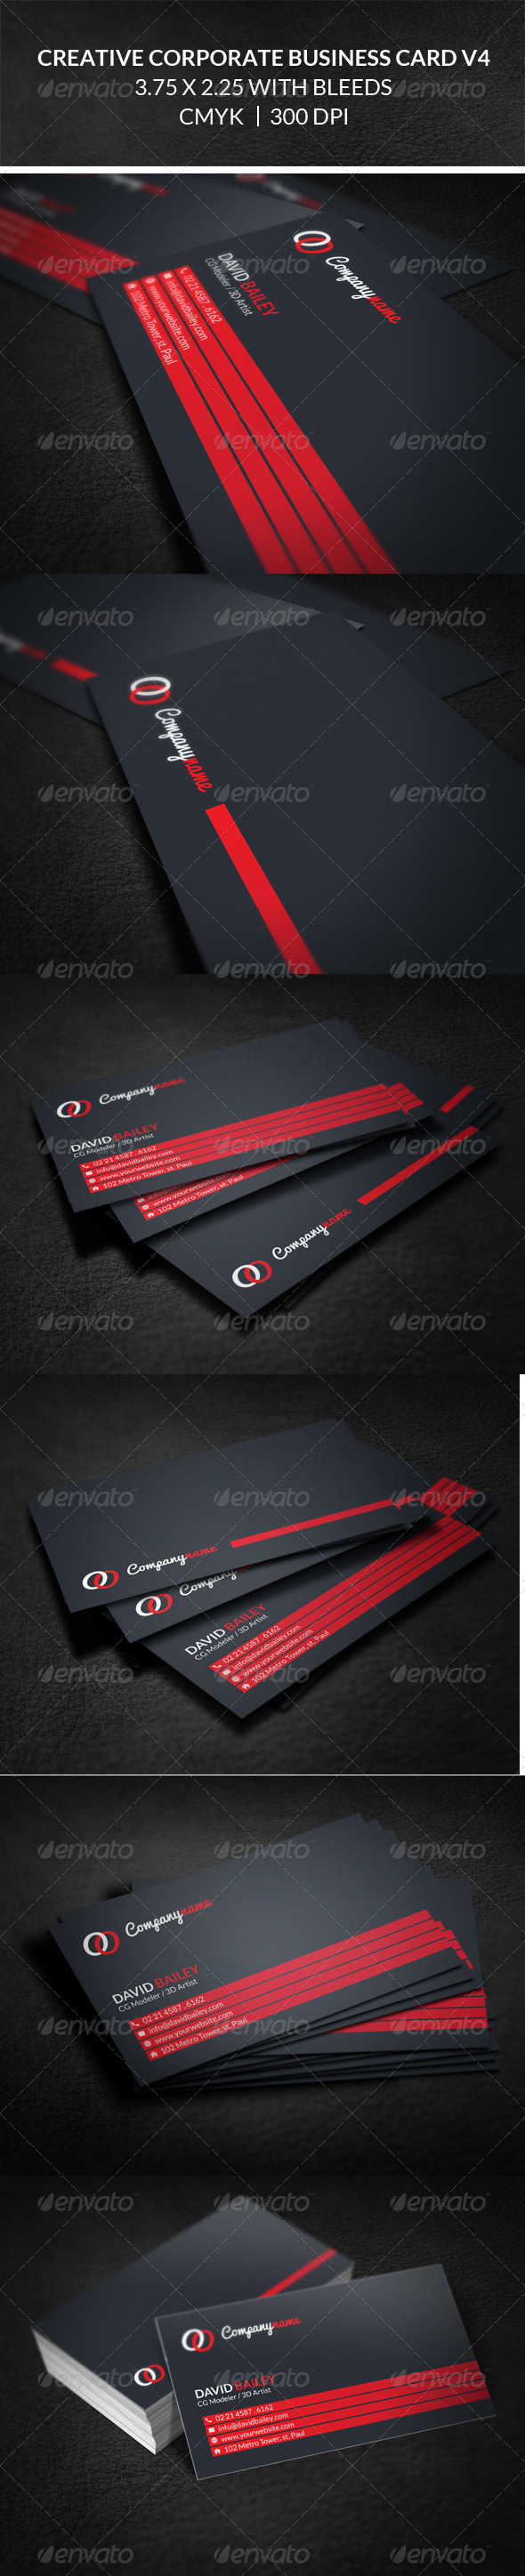 GraphicRiver Creative Corporate Business Card V4 8243157